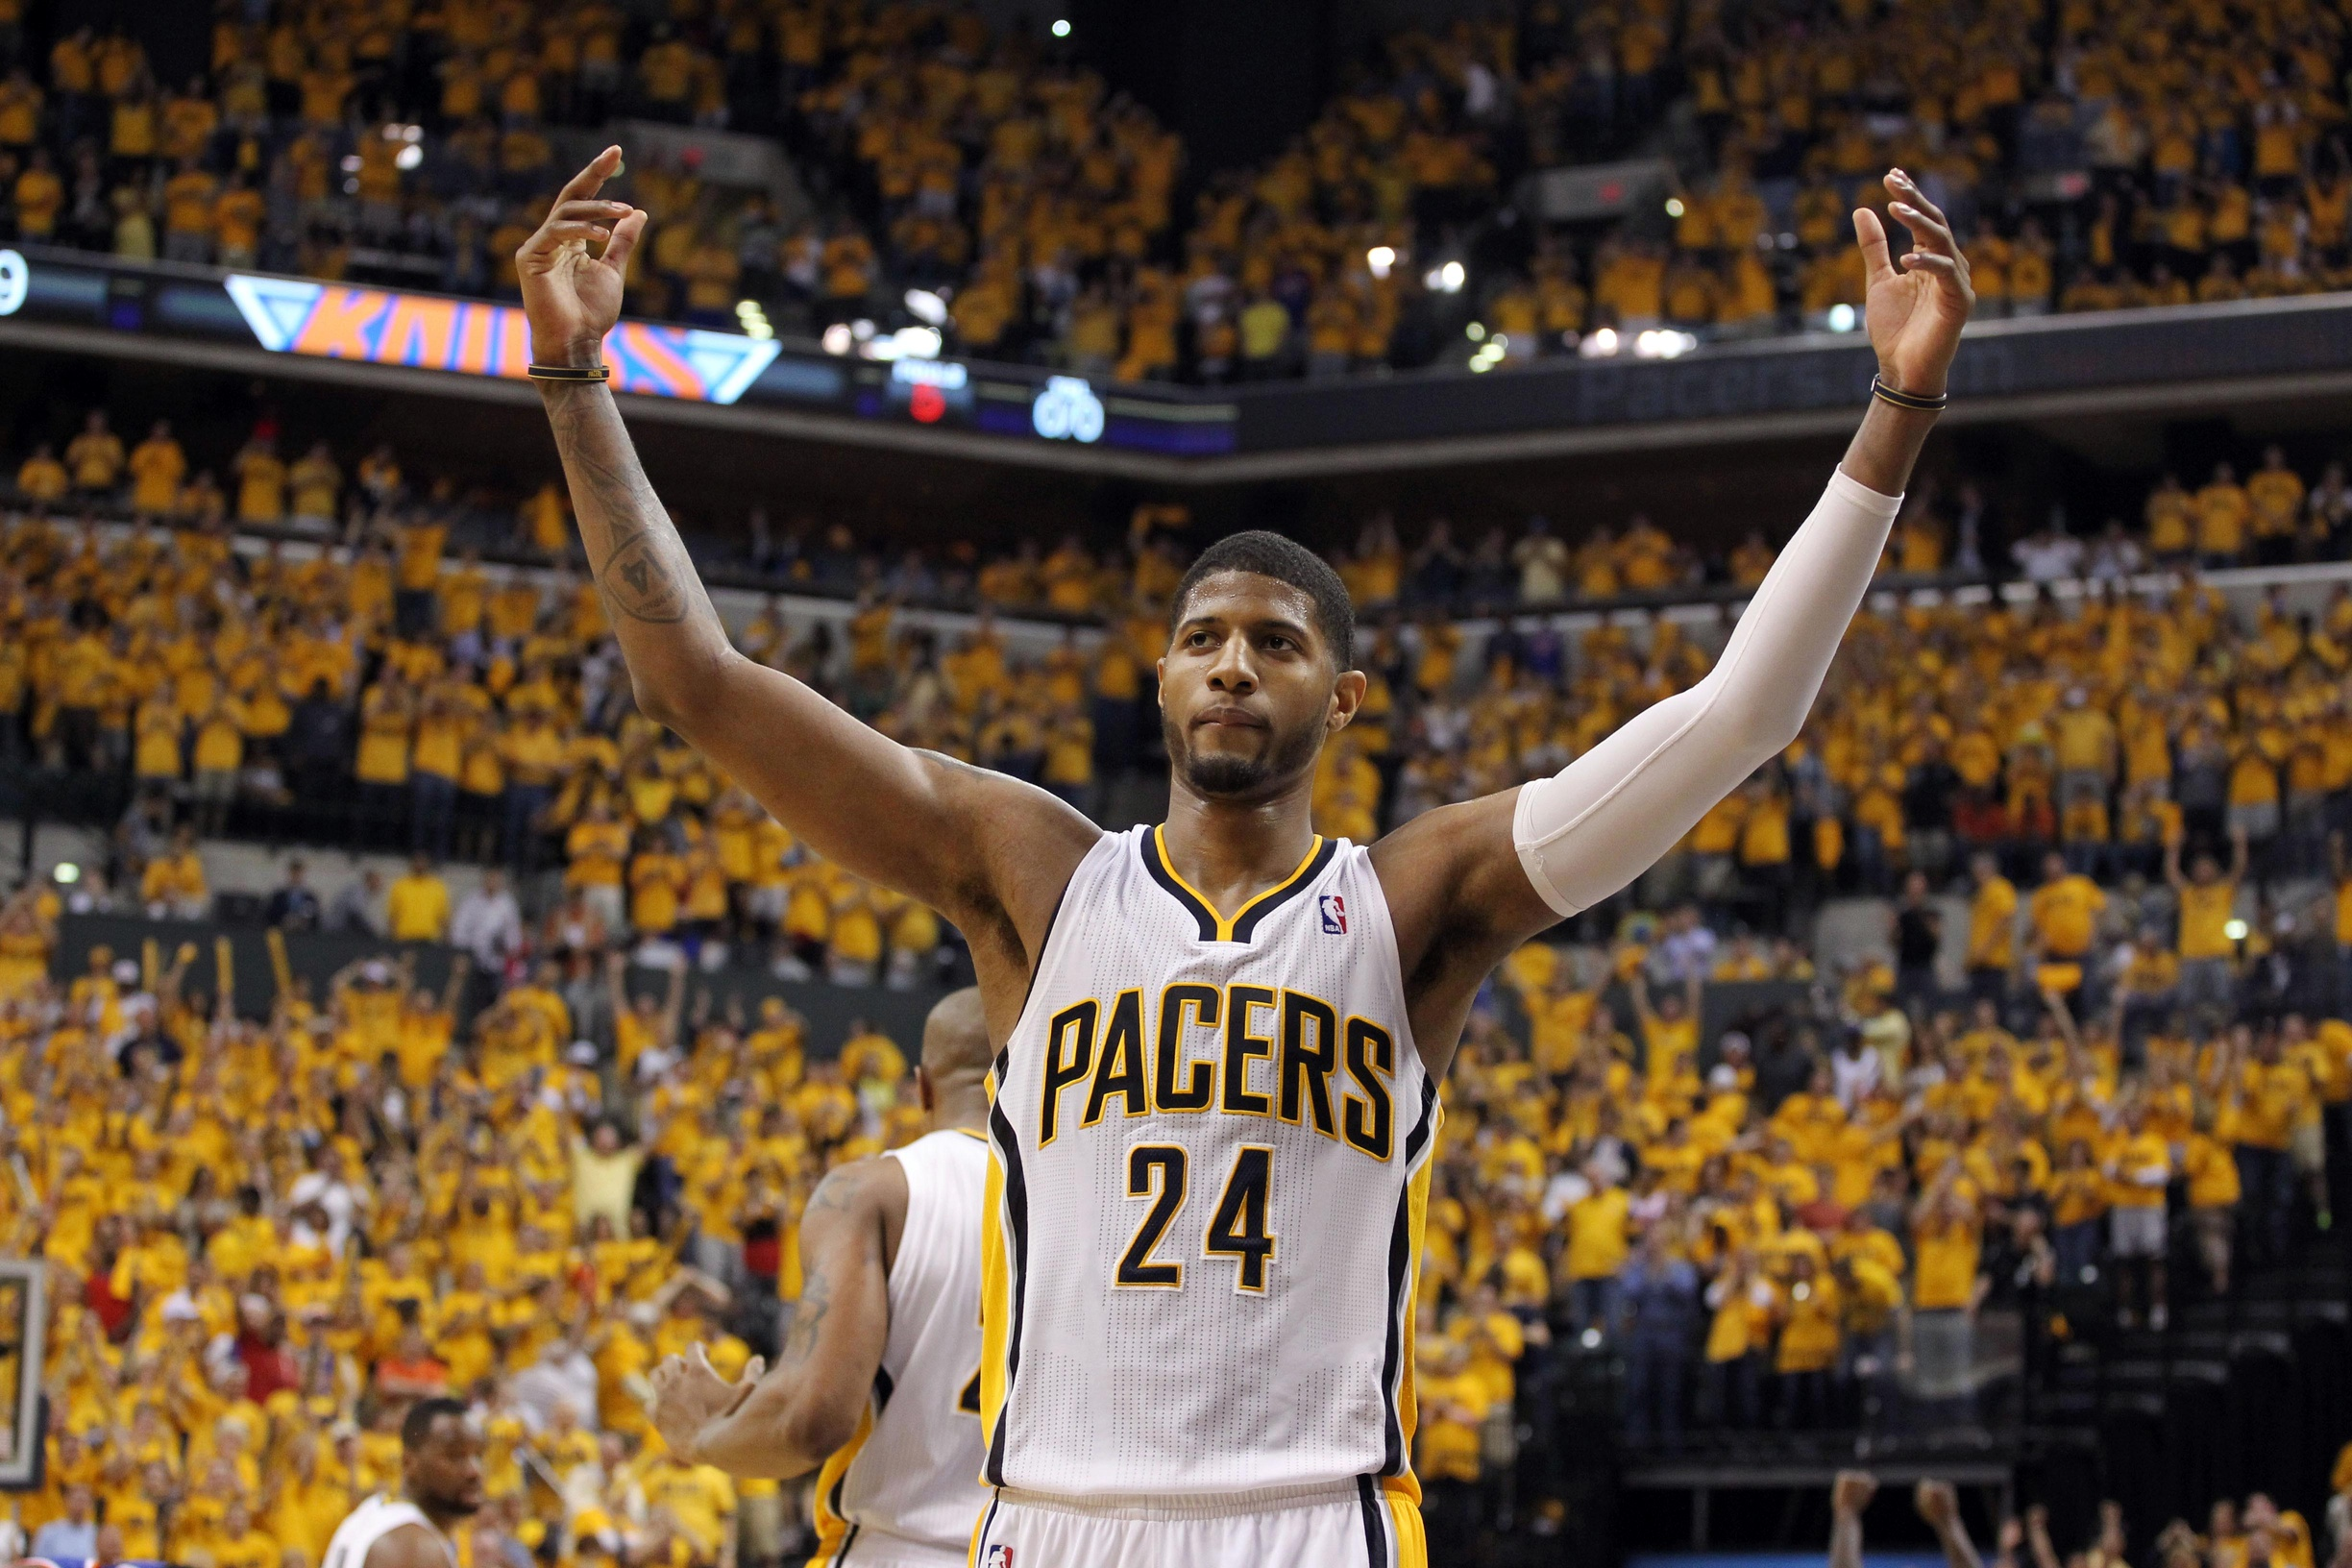 Ponturi baschet: Paul George ne aduce profitul in NBA